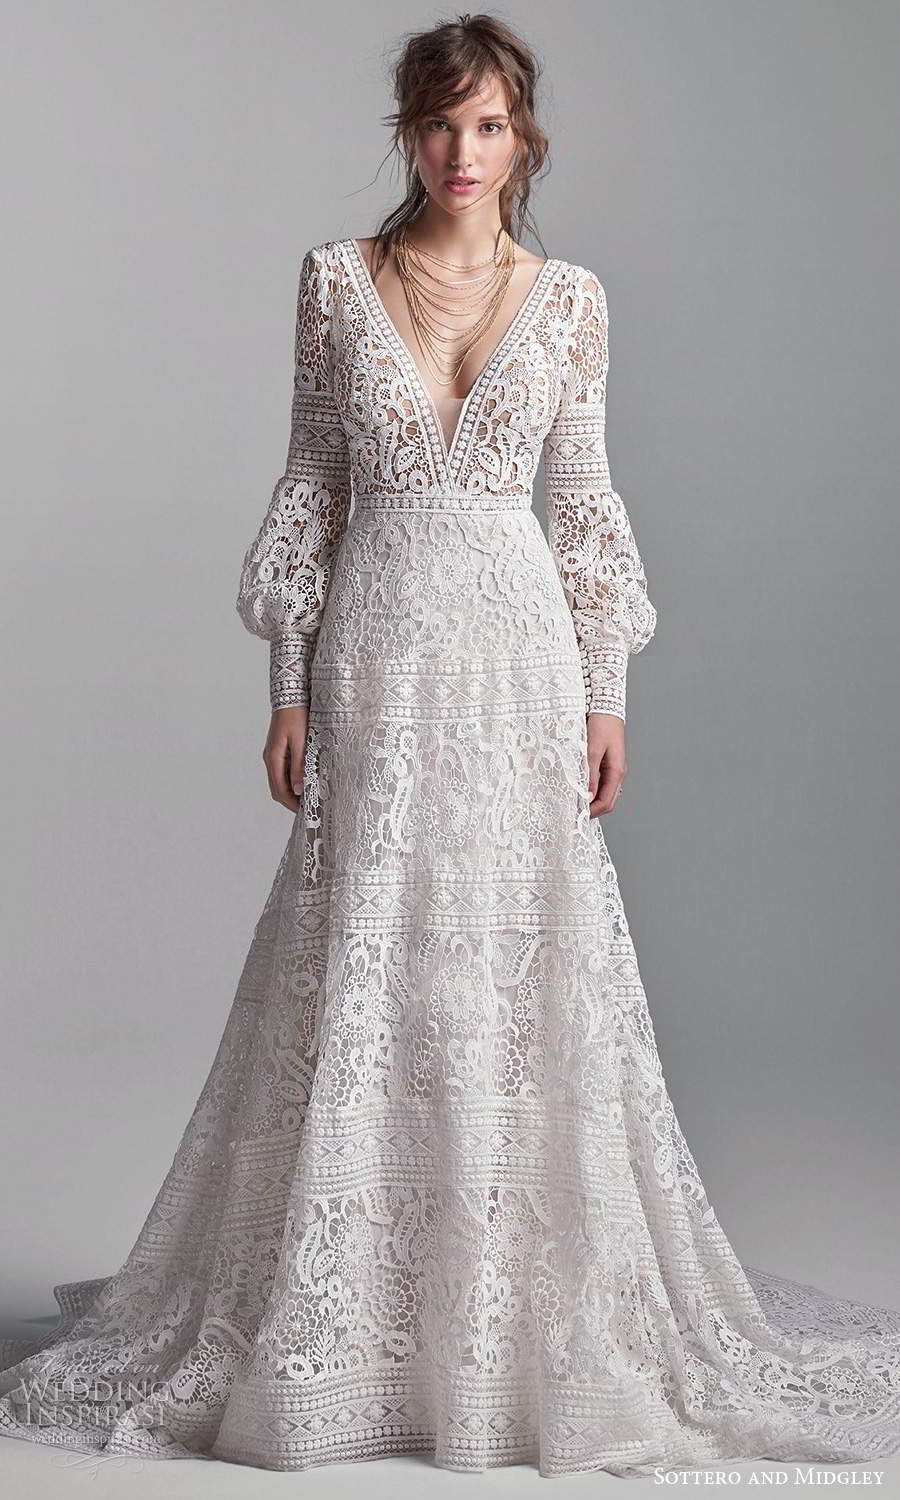 sottero midgley fall 2020 bridal long puff bishop sleeves plunging v neckline fully embellished lace a line ball gown wedding dress chapel train (11) mv